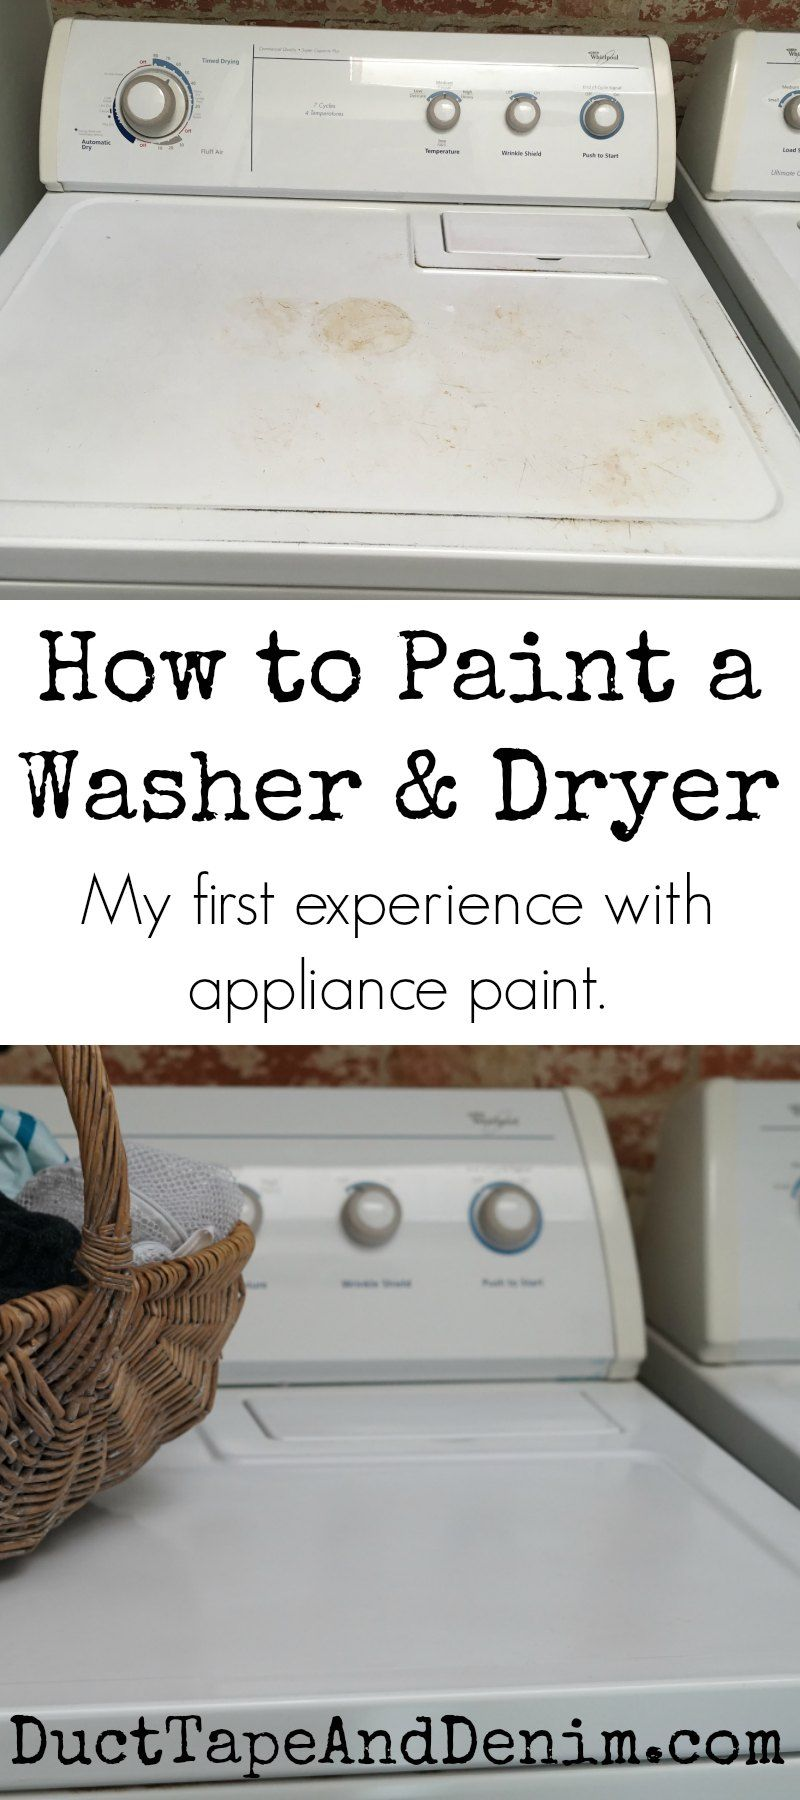 How to paint a washer and dryer. My first experience with appliance paint. Washing machine makeover! DuctTapeAndDenim.com  #howtopaintwashingmachine #appliancepaint #paintingappliances #howtopaintappliances #laundryroom #laundryroommakeover #budgetroommakeover